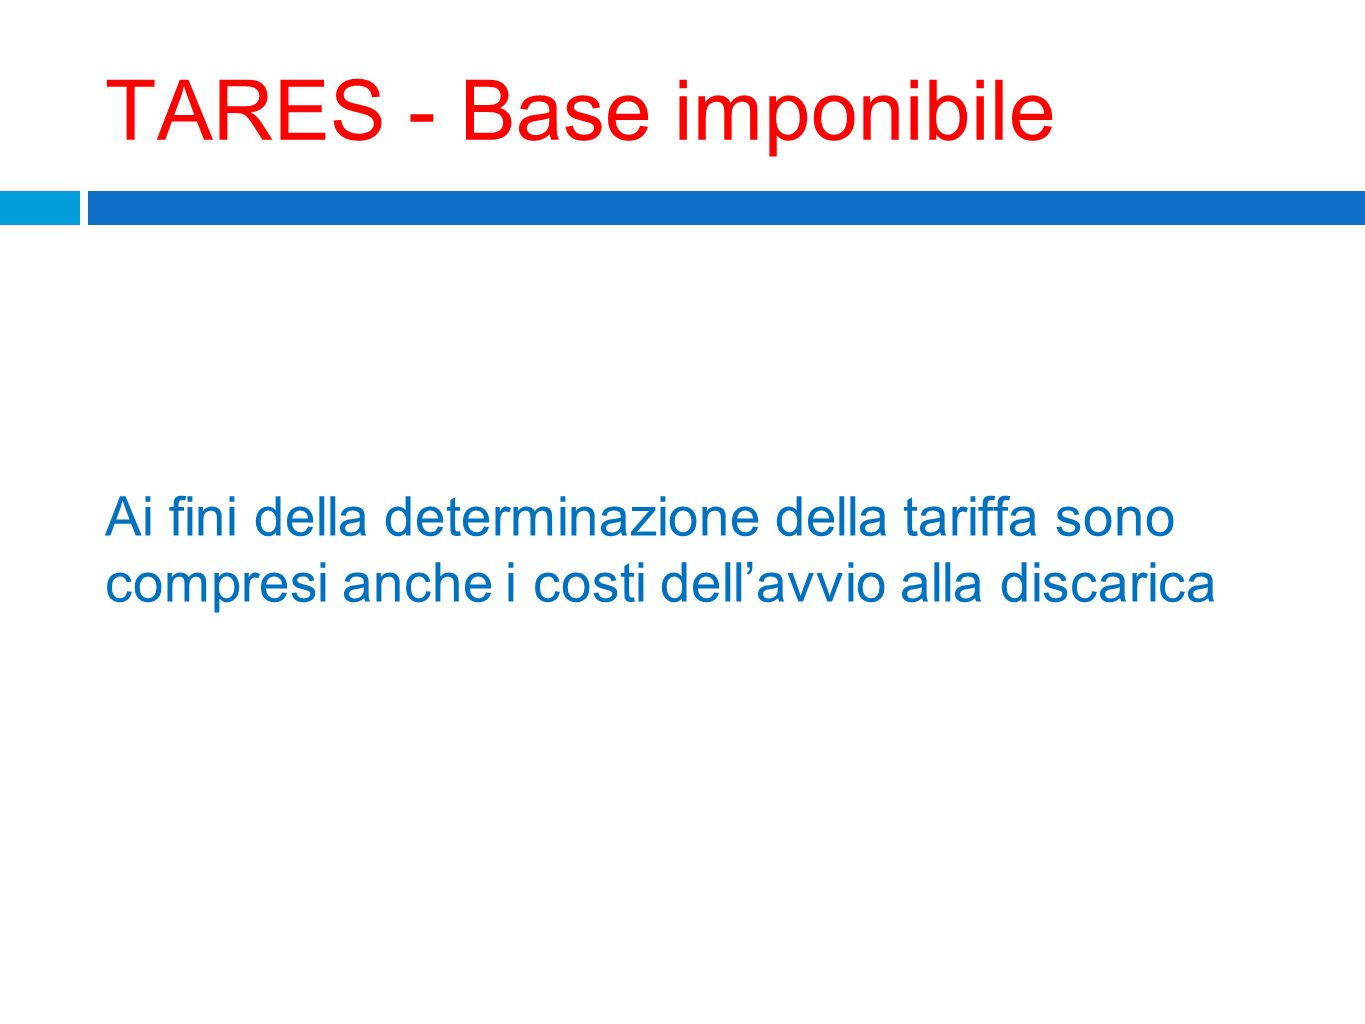 TARES - Base imponibile